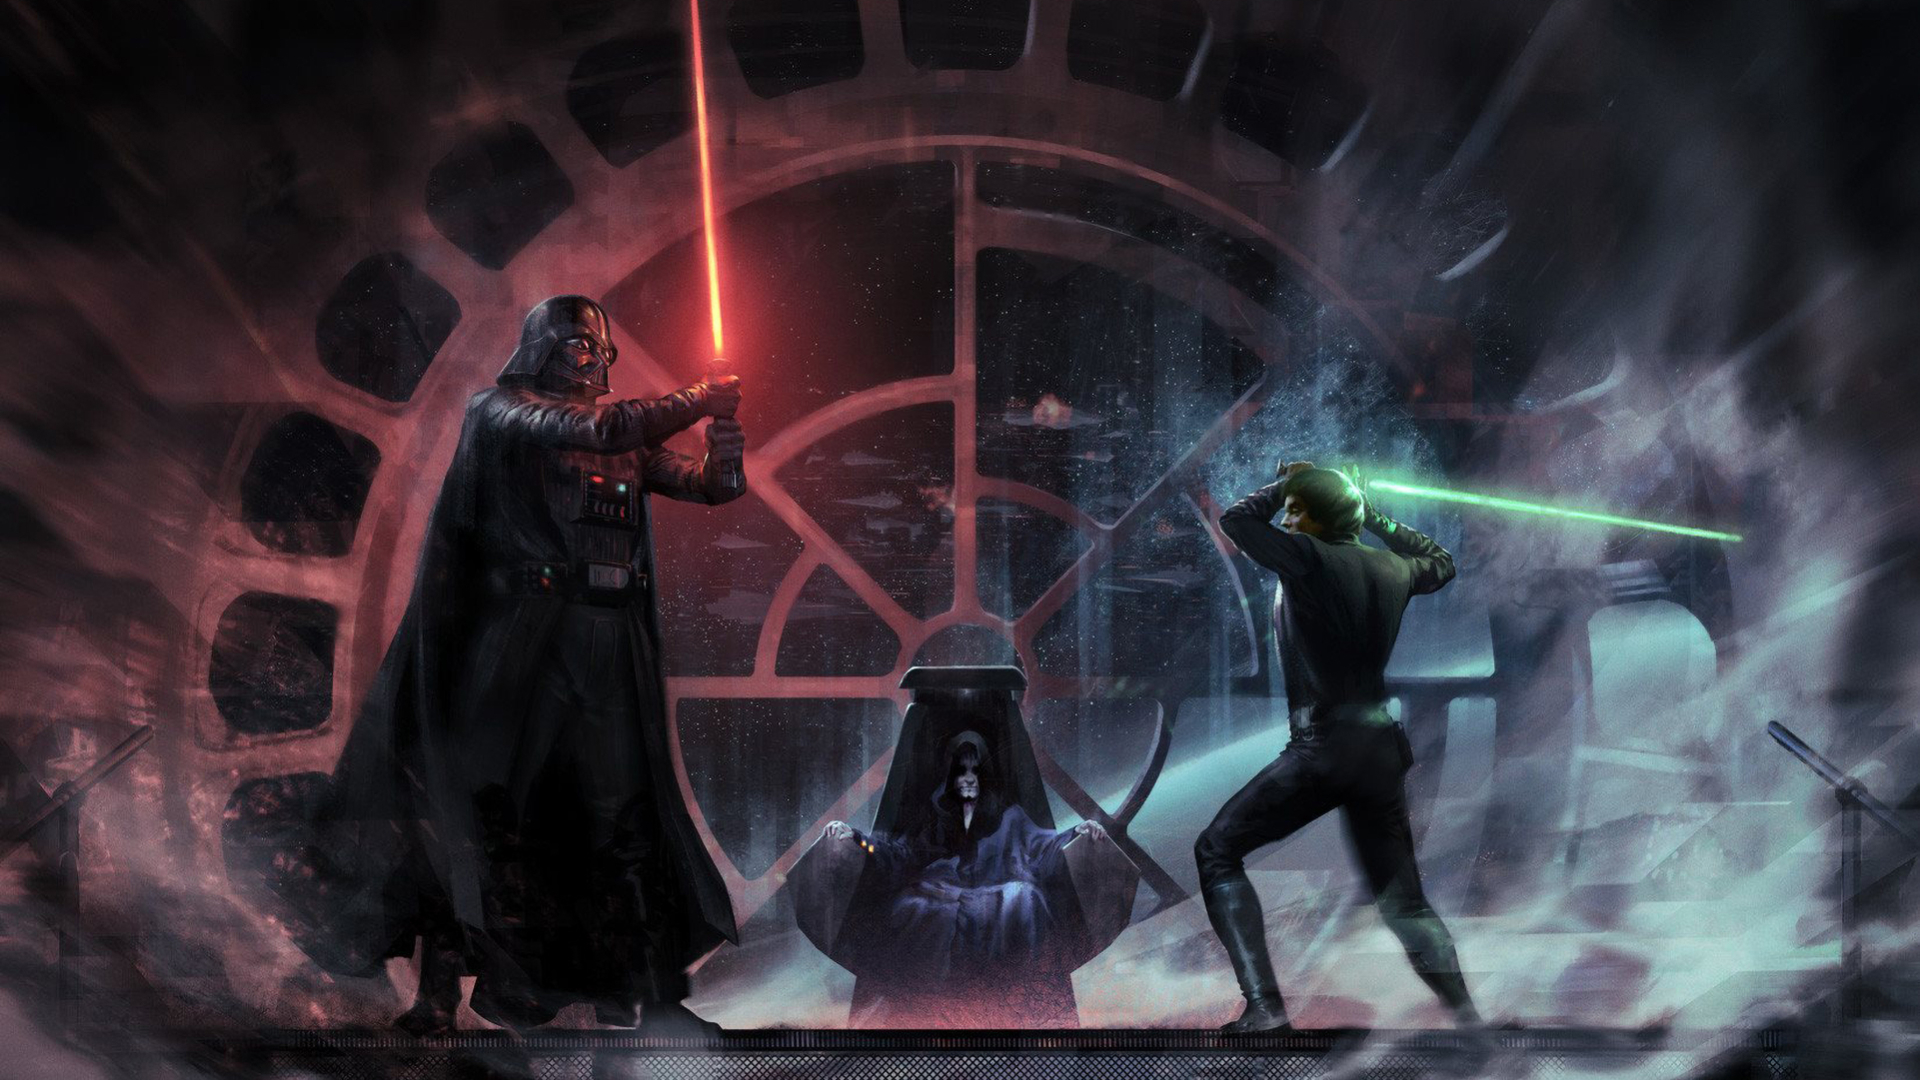 1920x1080 Luke Skywalker Vs Darth Vader Emperor Palpatin 1080p Laptop Full Hd Wallpaper Hd Movies 4k Wallpapers Images Photos And Background